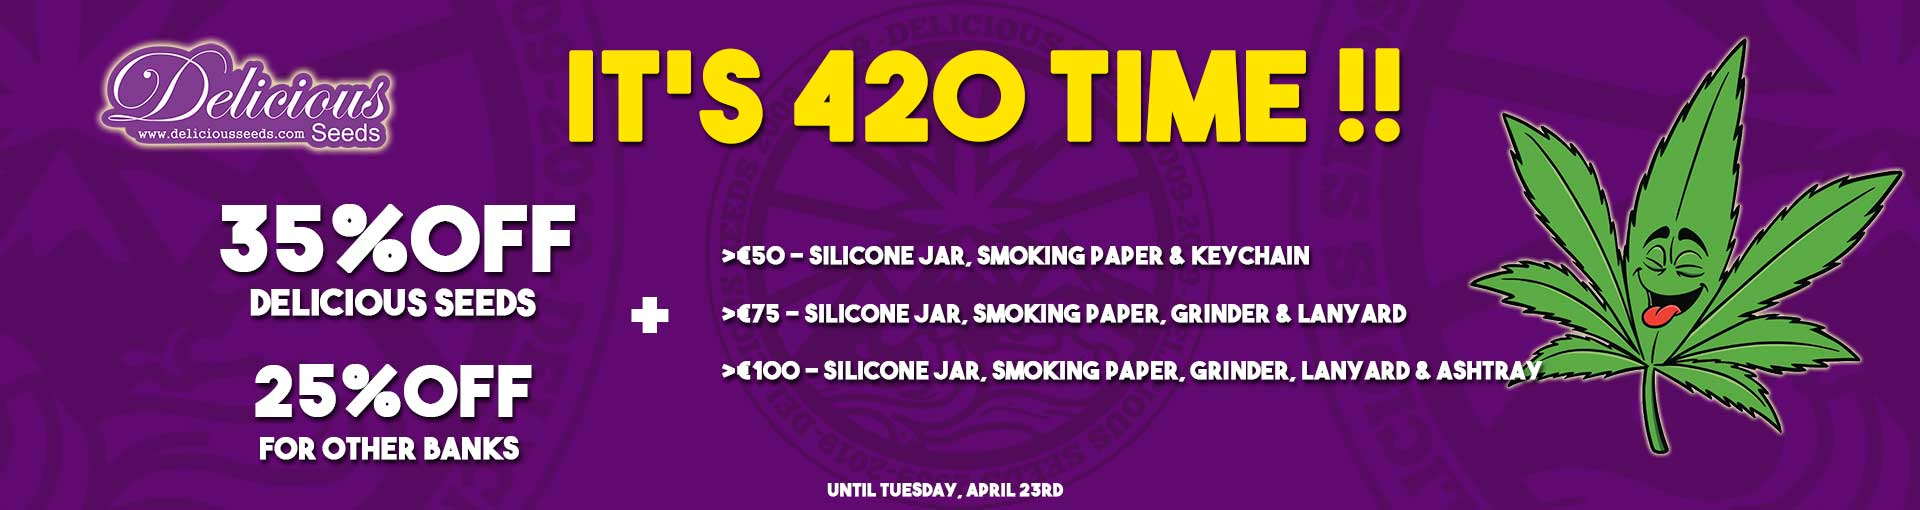 It's 420 Time